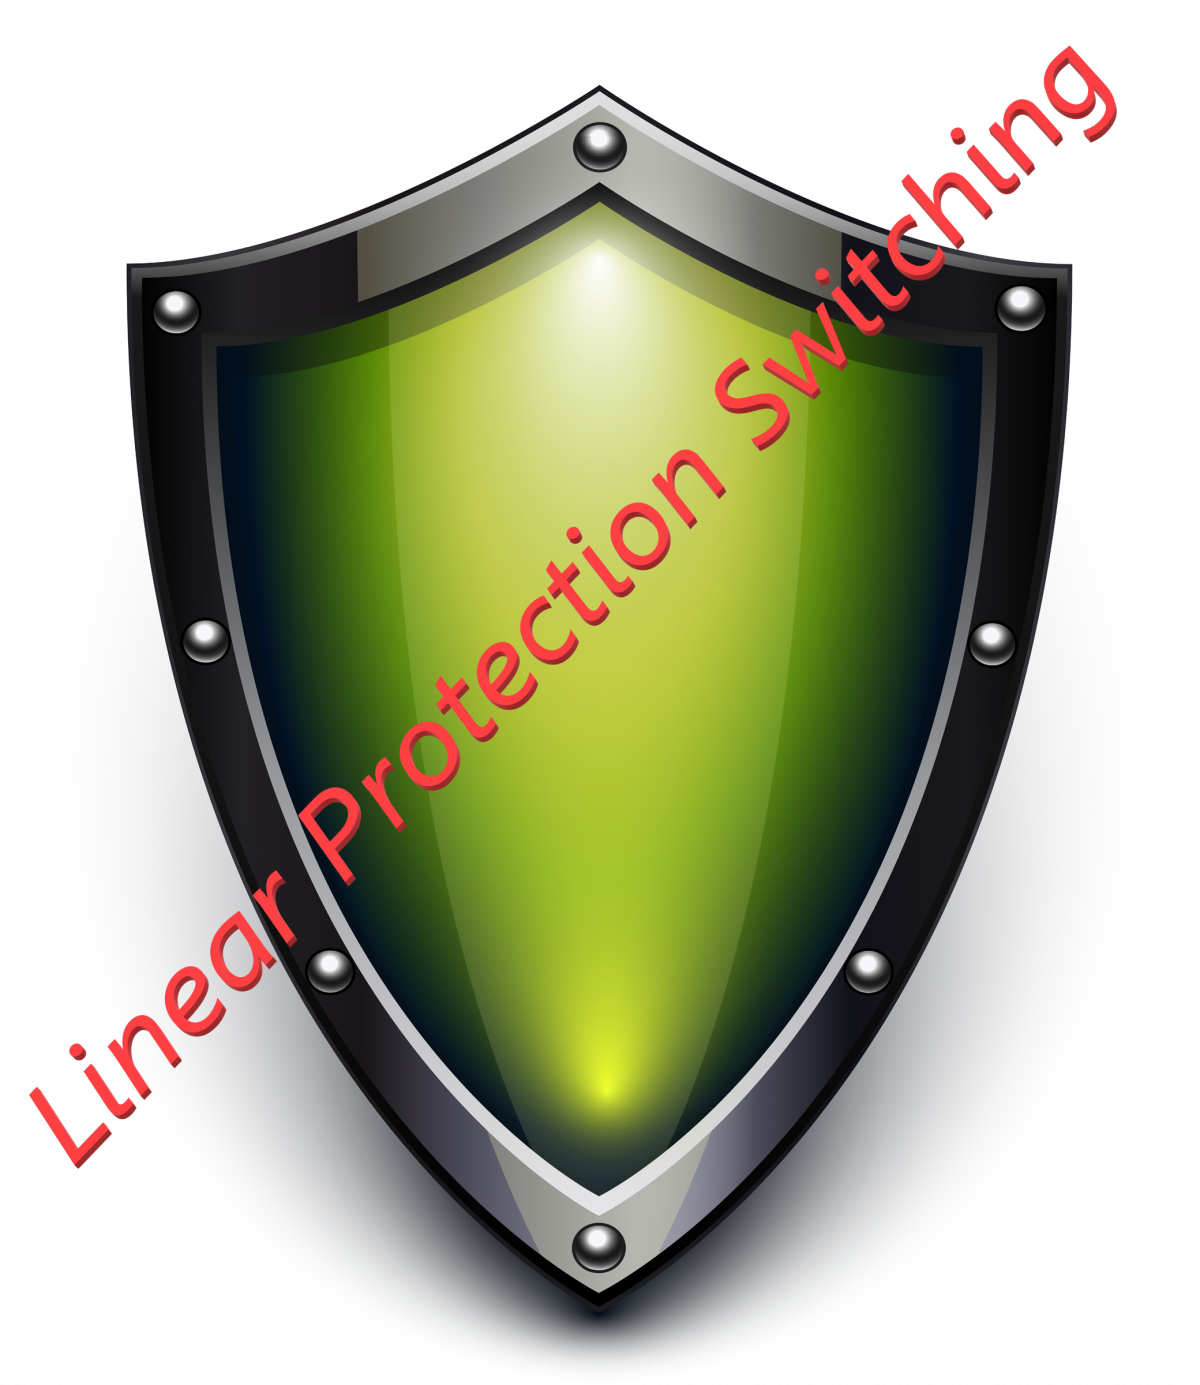 OTN – Lesson 12 – Introduction to SNCP (Subnetwork Connection Protection)